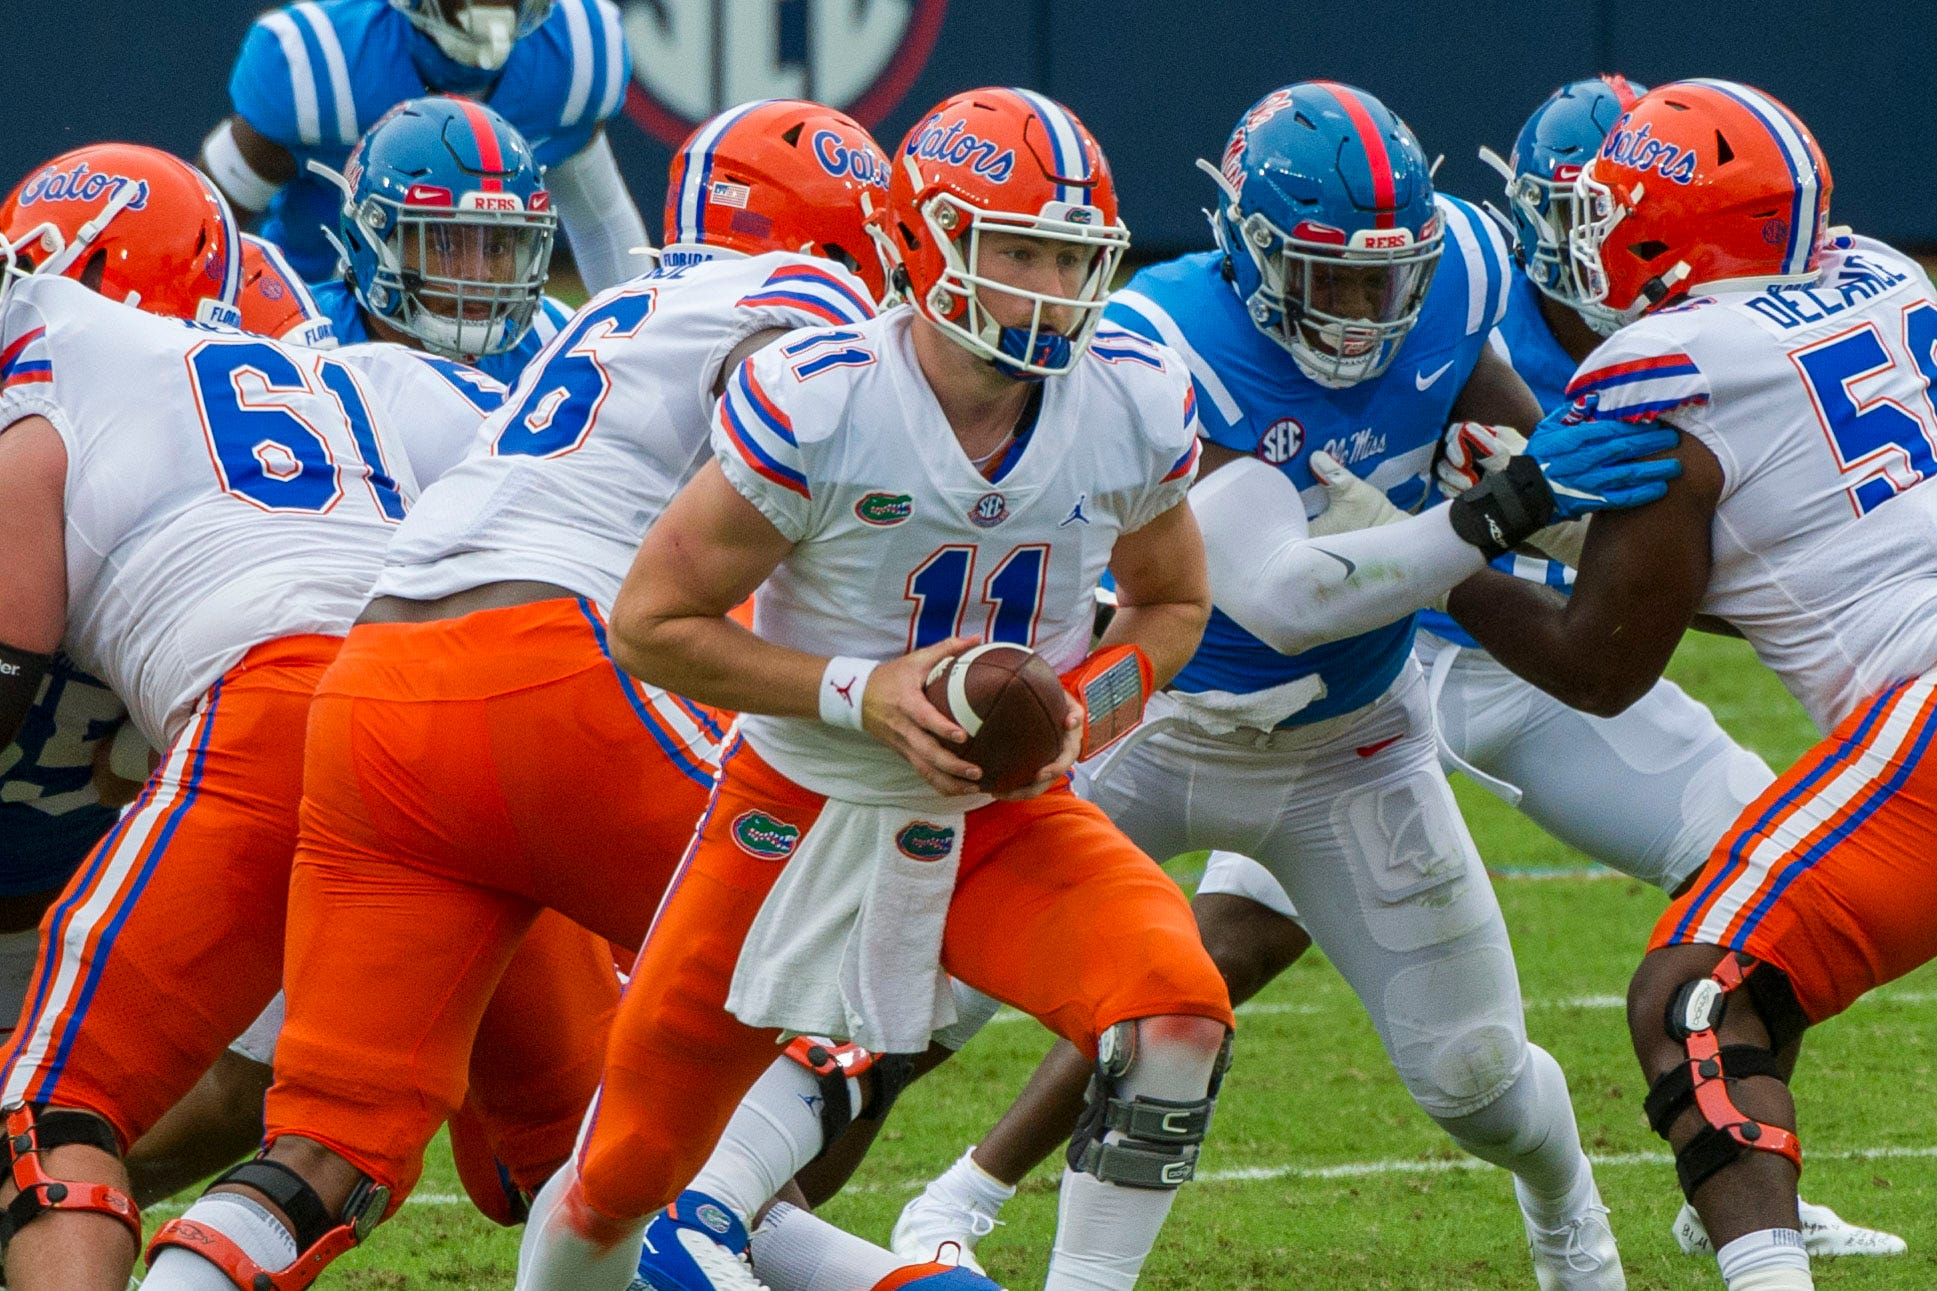 Florida-LSU game set for Saturday is postponed due to COVID-19 concerns